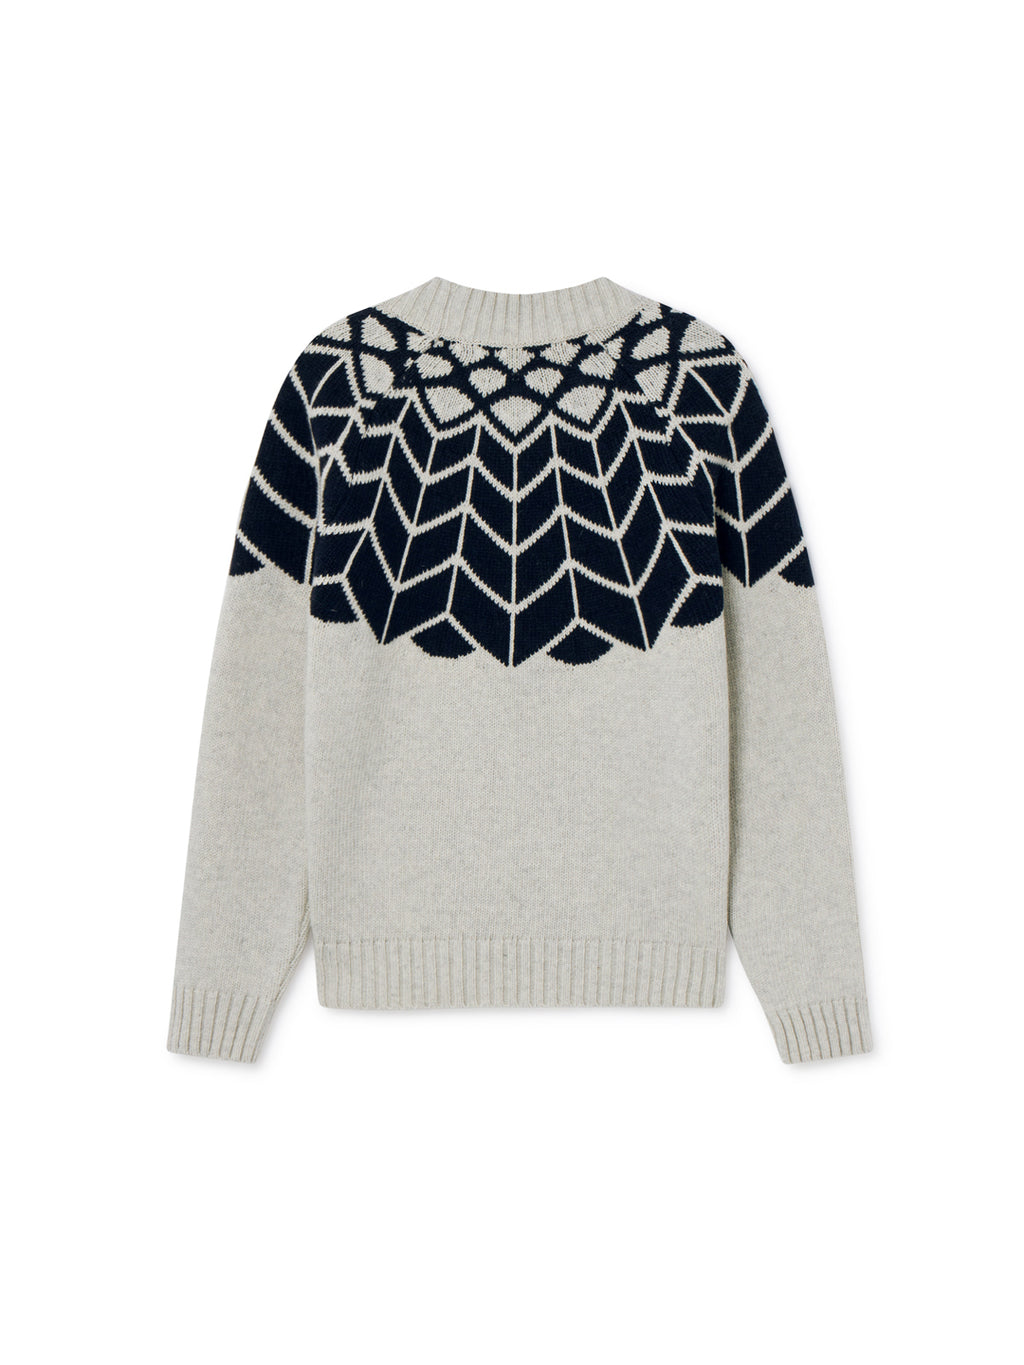 TWOTHIRDS Womens Knit: Noro - Navy back